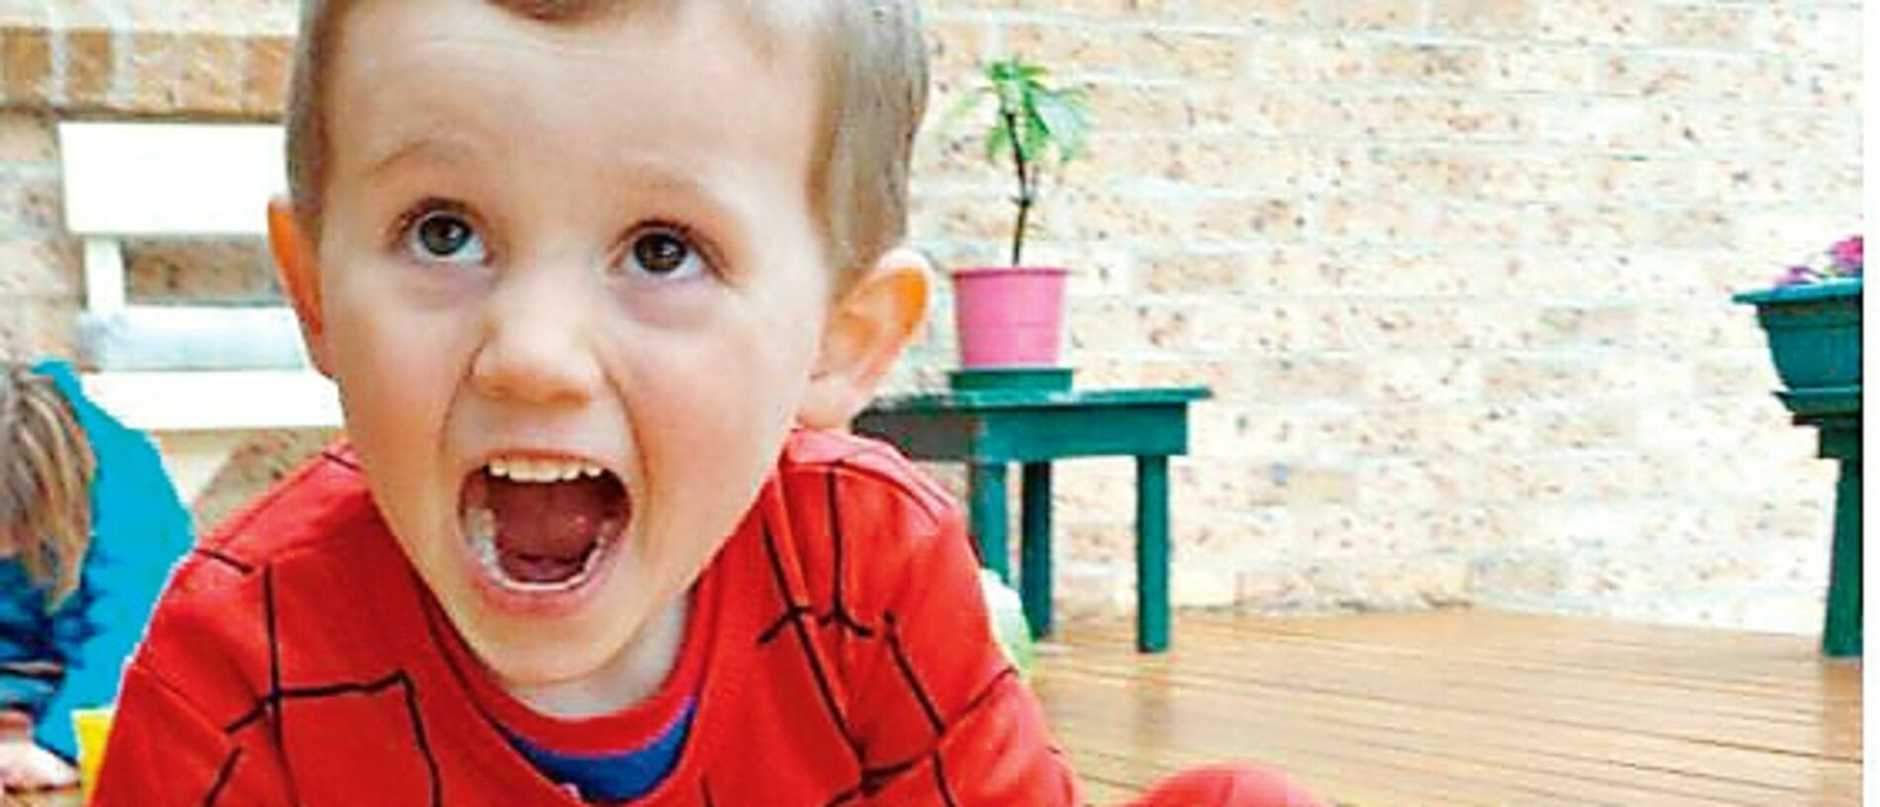 William Tyrrell, Caroline Overington feature